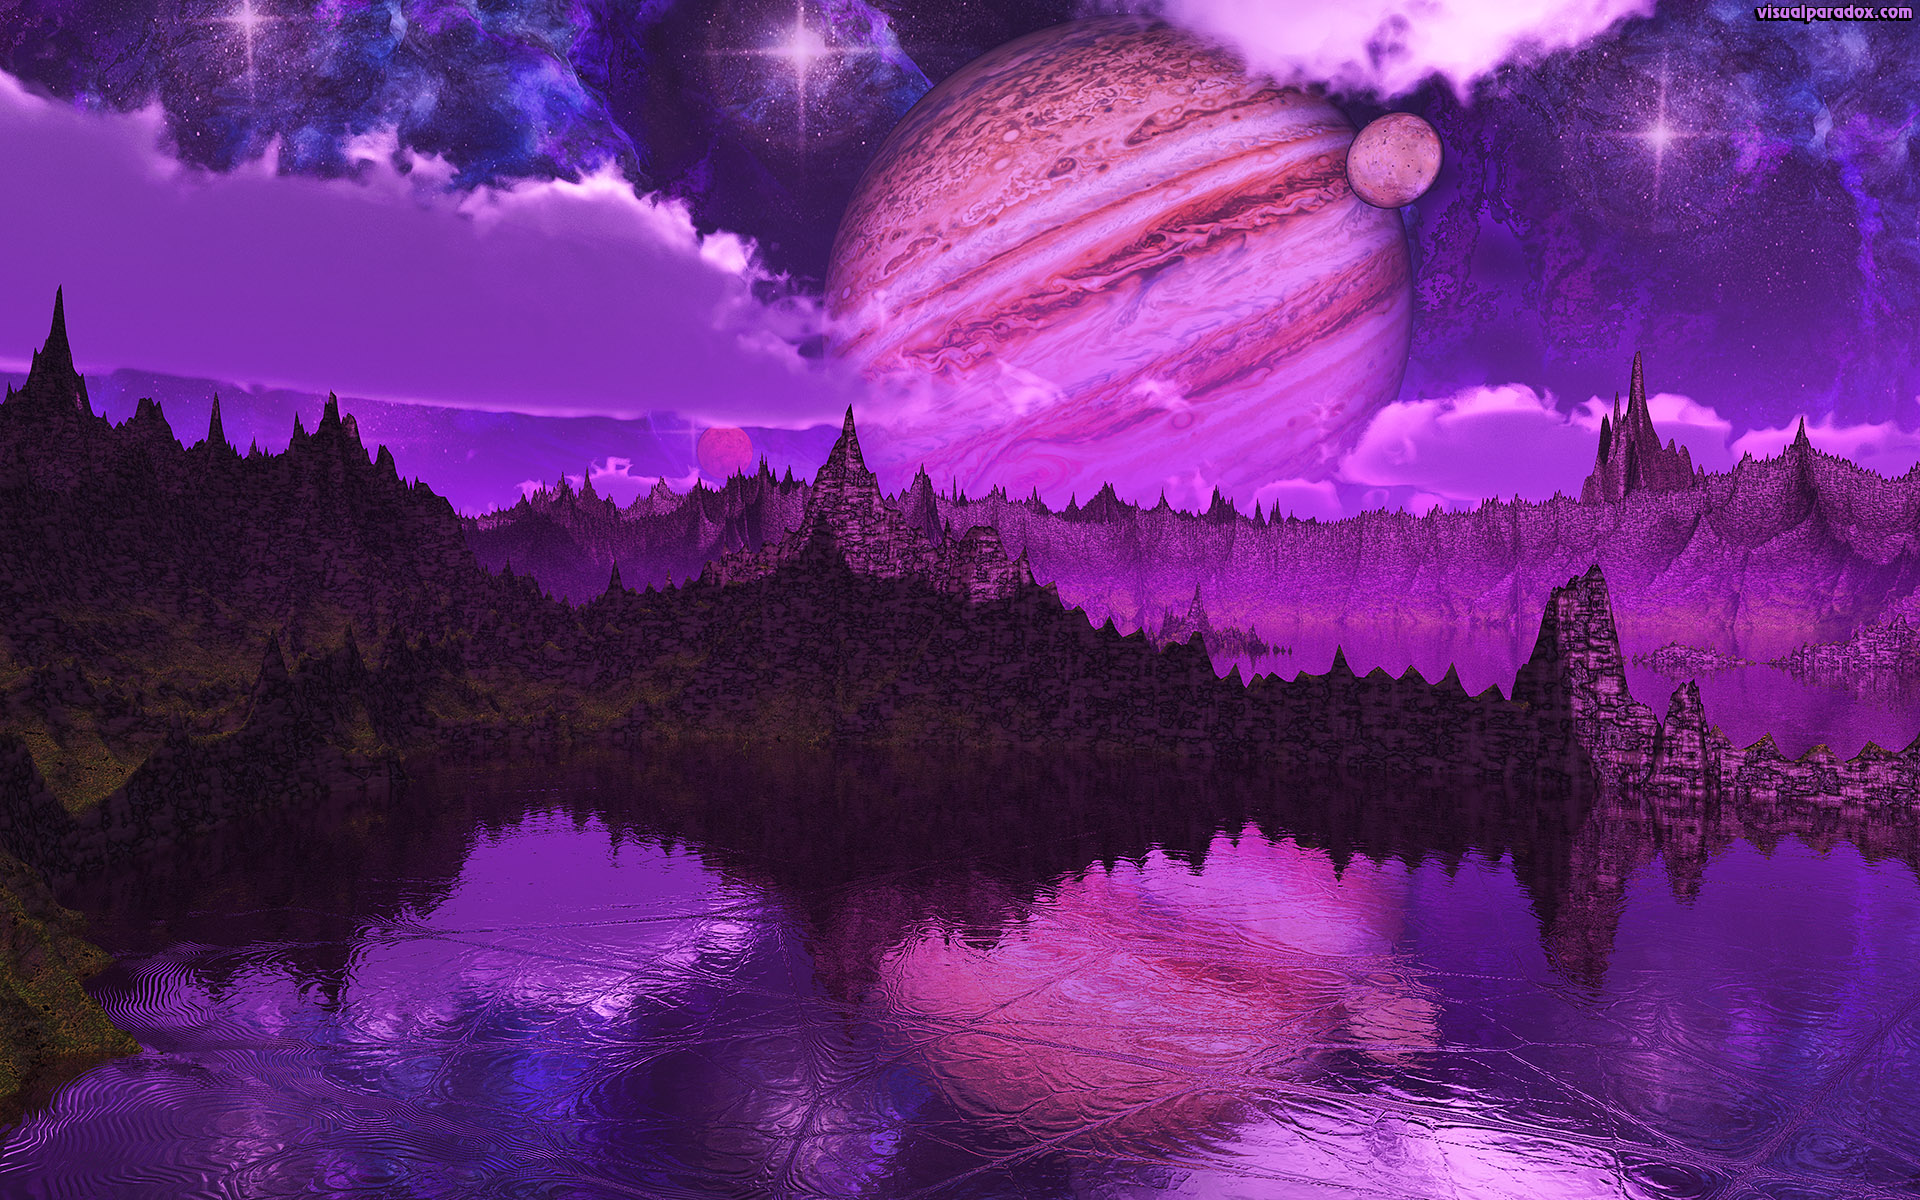 alien, astronomy, background, bright, callisto, cosmos, design, europa, field, galaxy, galilean, ganymede, illustration, io, island, jagged, jupiter, lakes, landscape, moon, mountains, nature, nebula, night, orbit, outer, planet, reflection, science, sea, shining, sky, solar, space, star, starry, sun, universe, world, 3d, wallpaper